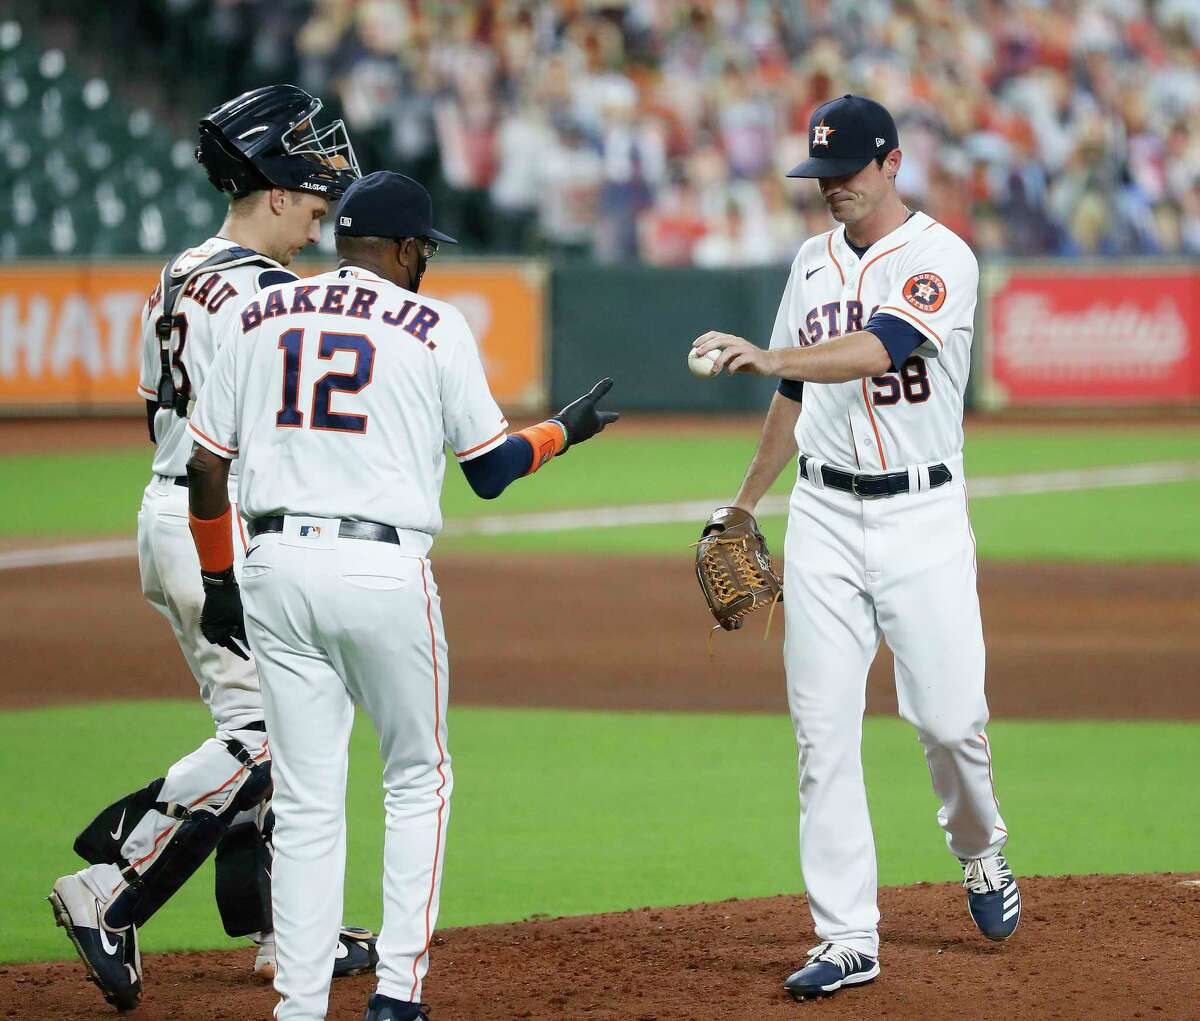 Houston Astros relief pitcher Brooks Raley (58) gets pulled by manager Dusty Baker Jr. after giving up a home run to Los Angeles Angels Luis Rengifo during the fourth inning of the second game in a double header during an MLB baseball game at Minute Maid Park, Tuesday, August 25, 2020, in Houston.